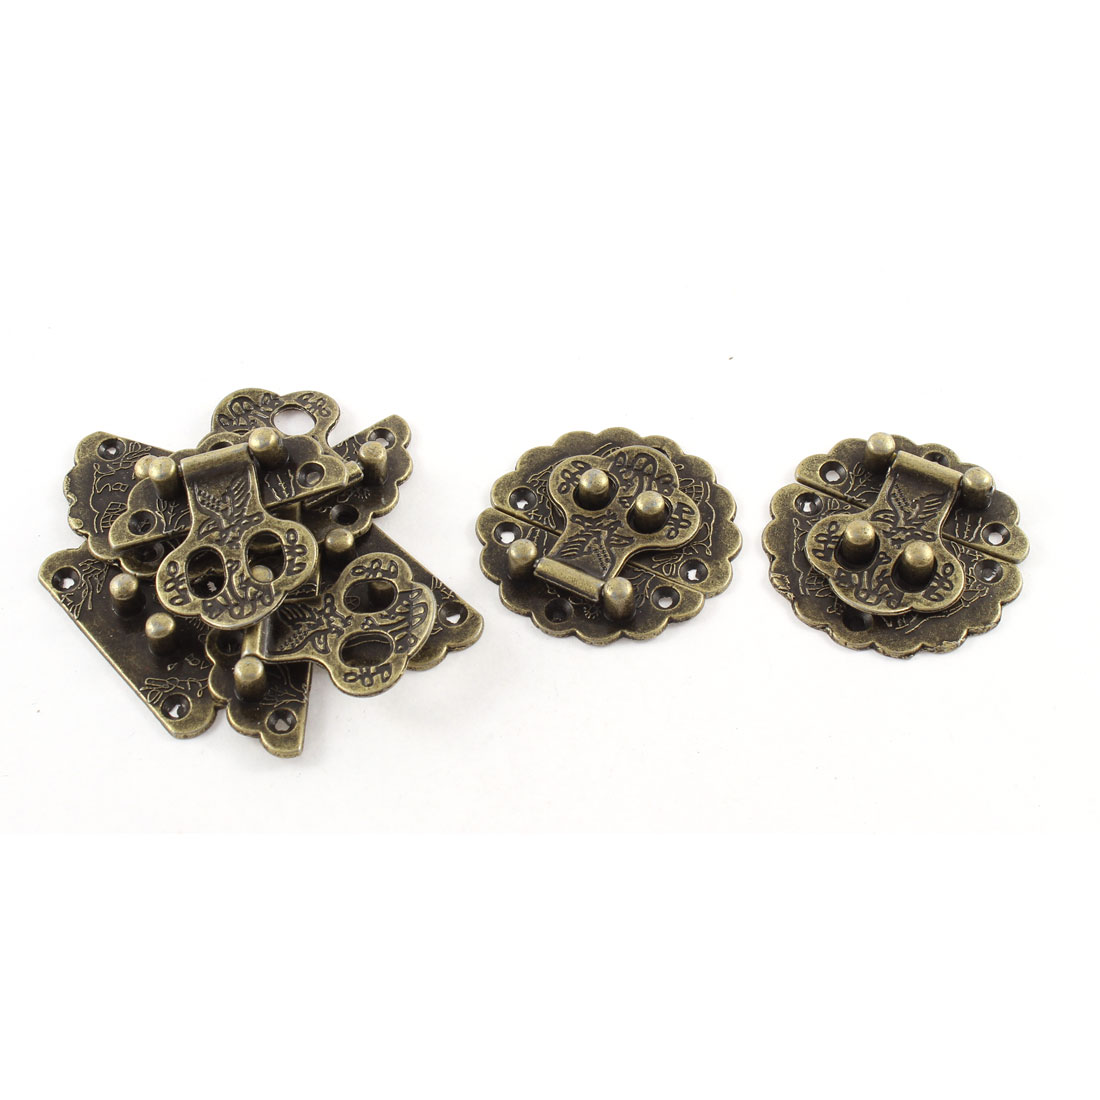 5pcs 40mmx40mm Vintage Style Flower Shape Box Suitcase Toggle Latch Buckles